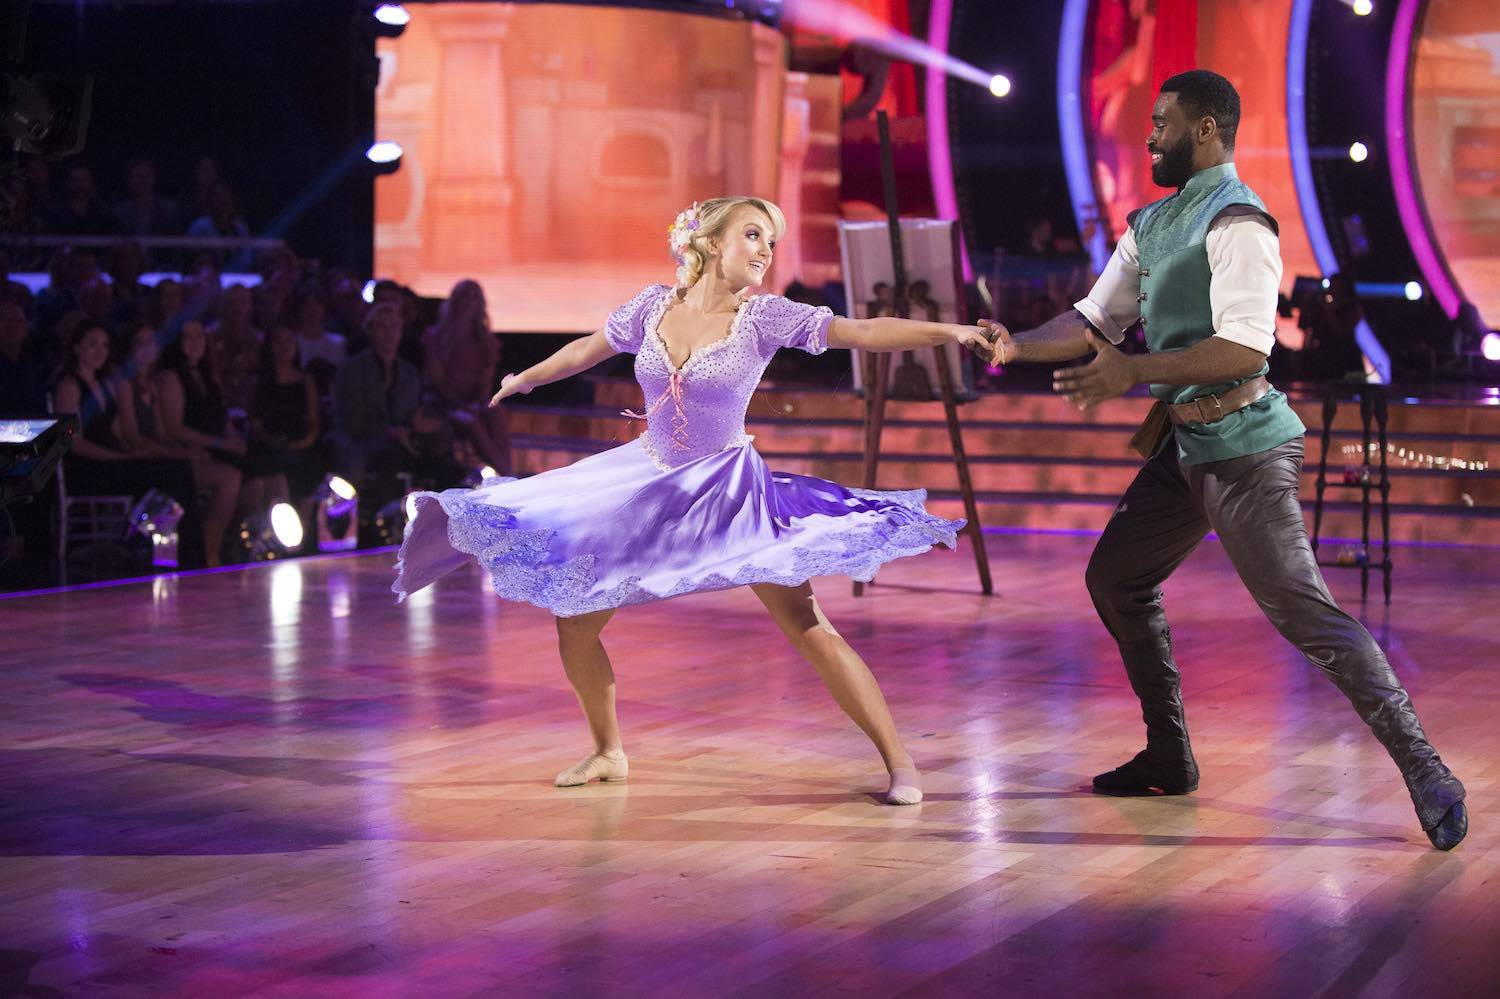 Evanna Lynch and Keo Motsepe dancing, dressed up as Rapunzel and Flynn Rider from Tangled